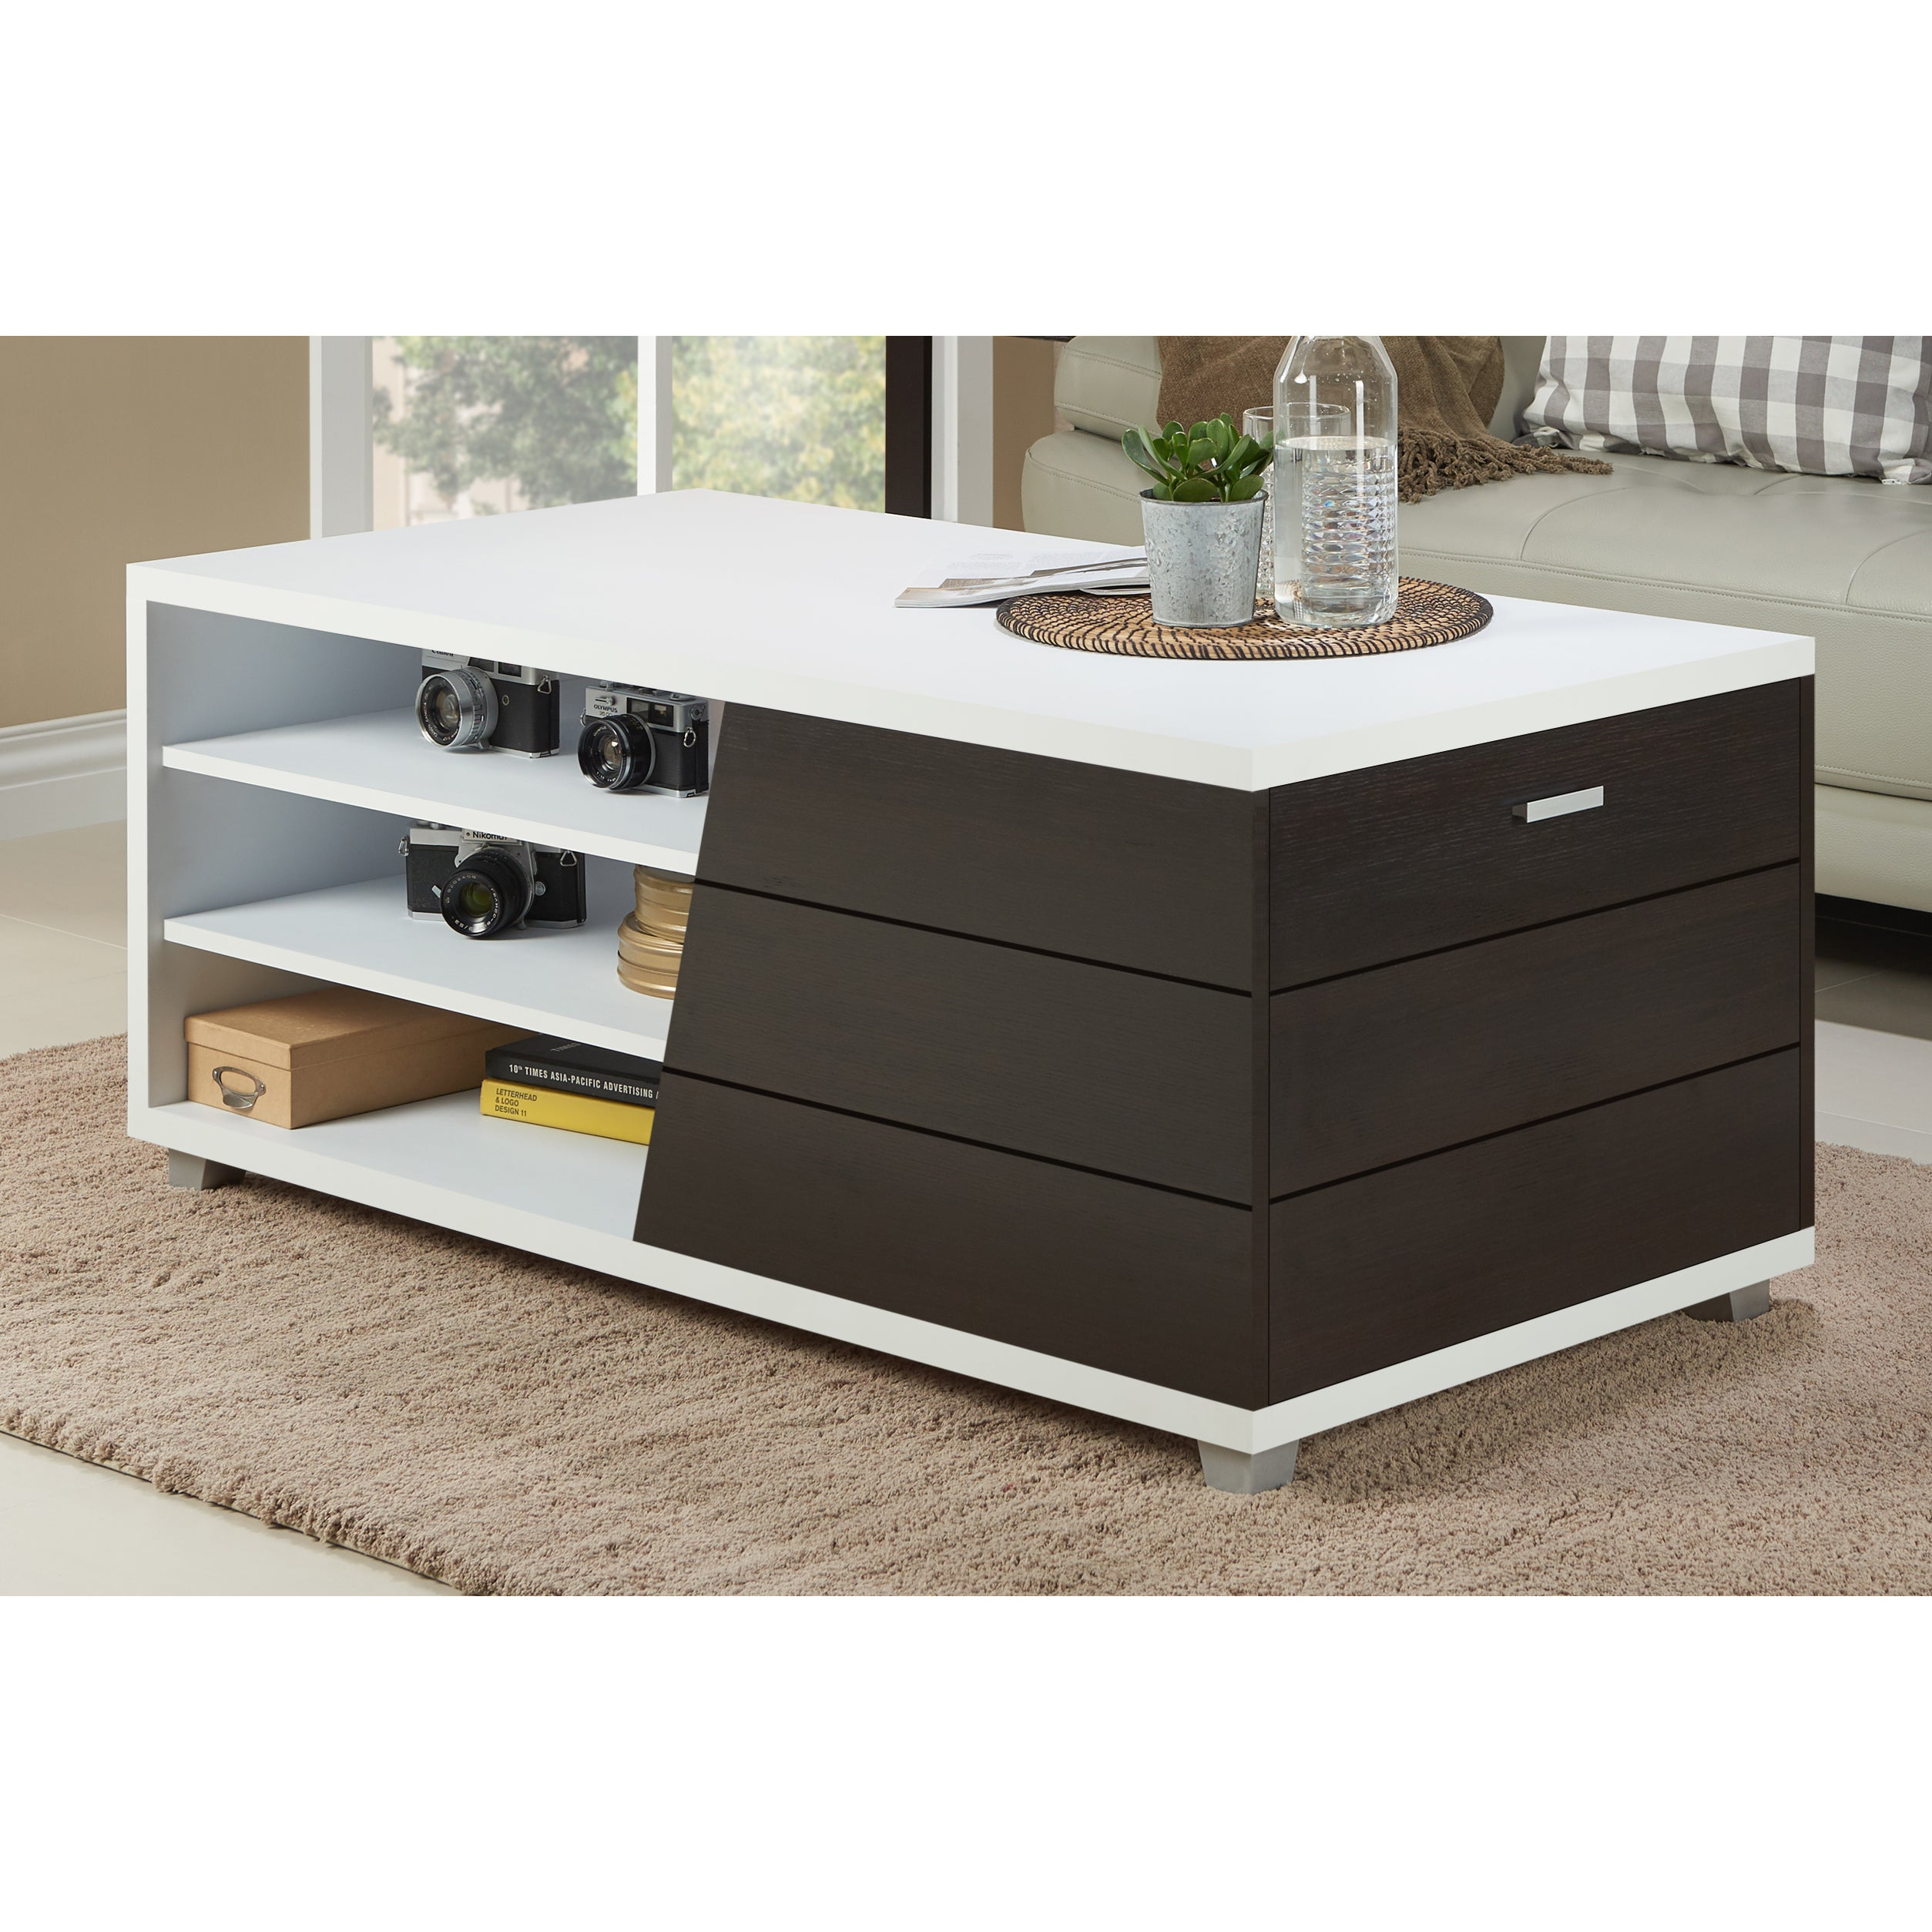 Expresso Coffee Table.Sorenson Contemporary White Multi Shelf 1 Drawer Coffee Table By Foa